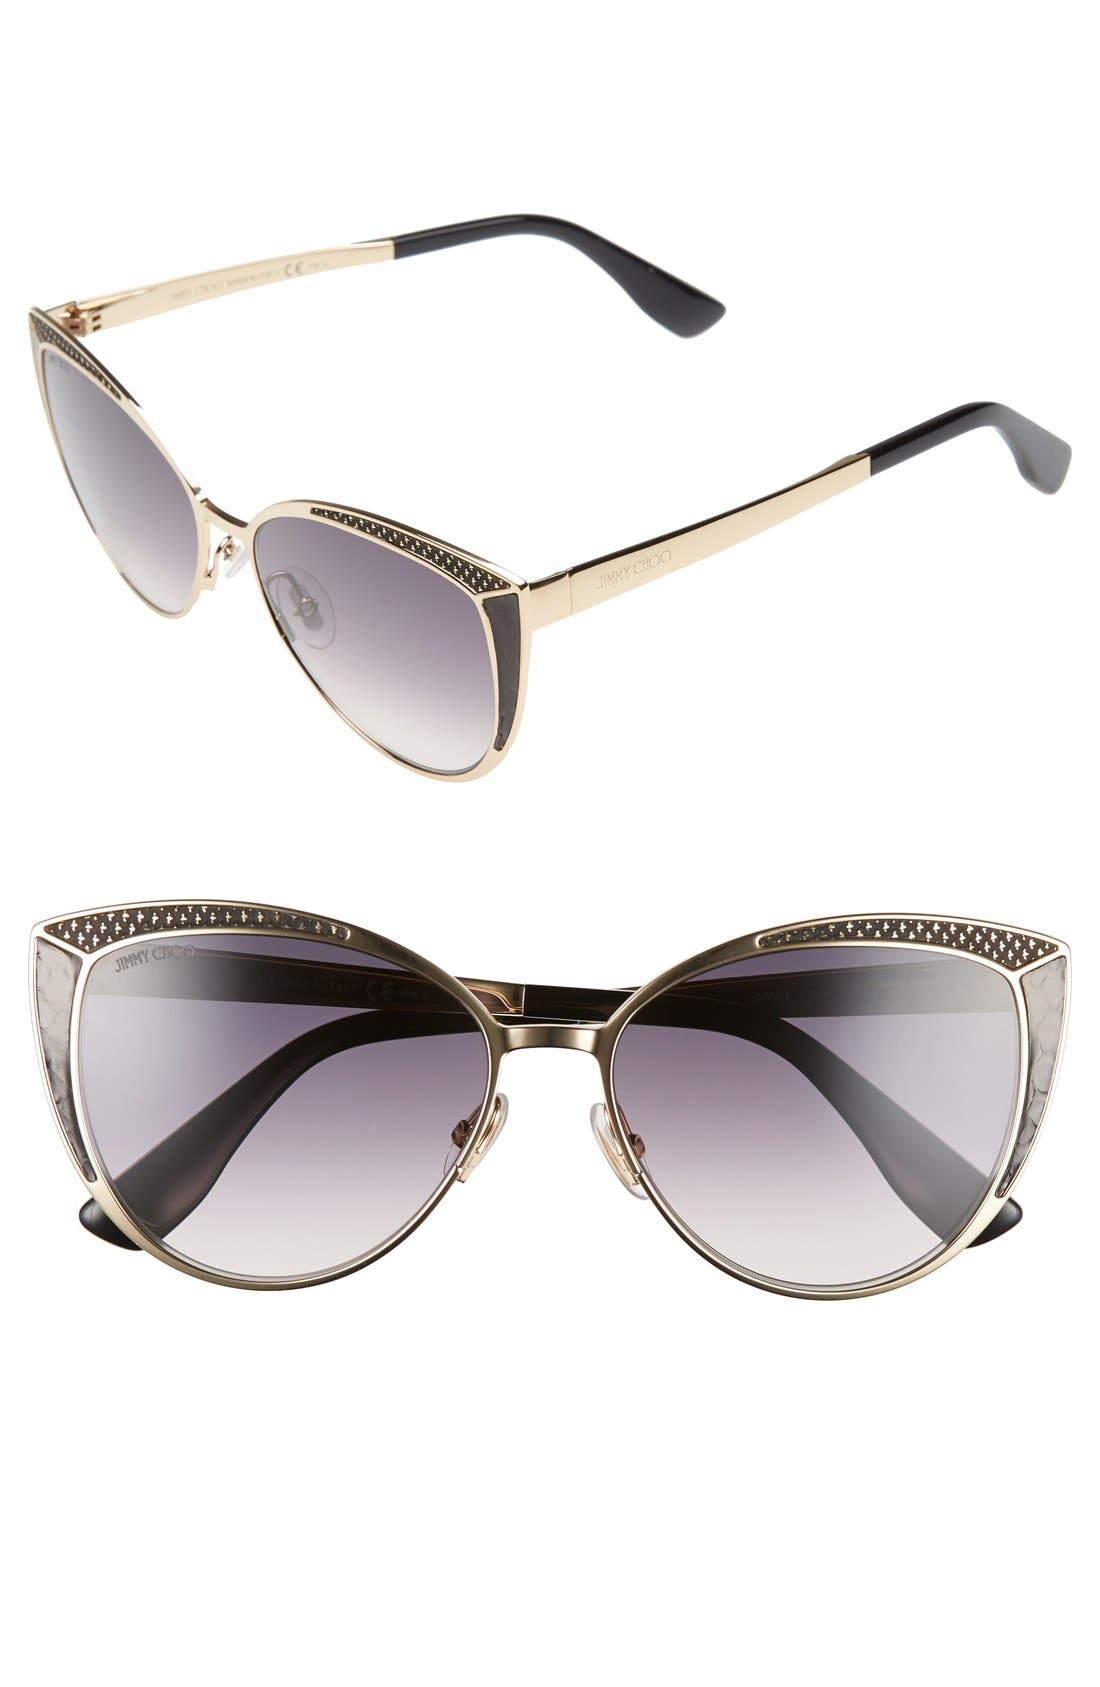 Jimmy Choo 56mm Cat Eye Sunglasses